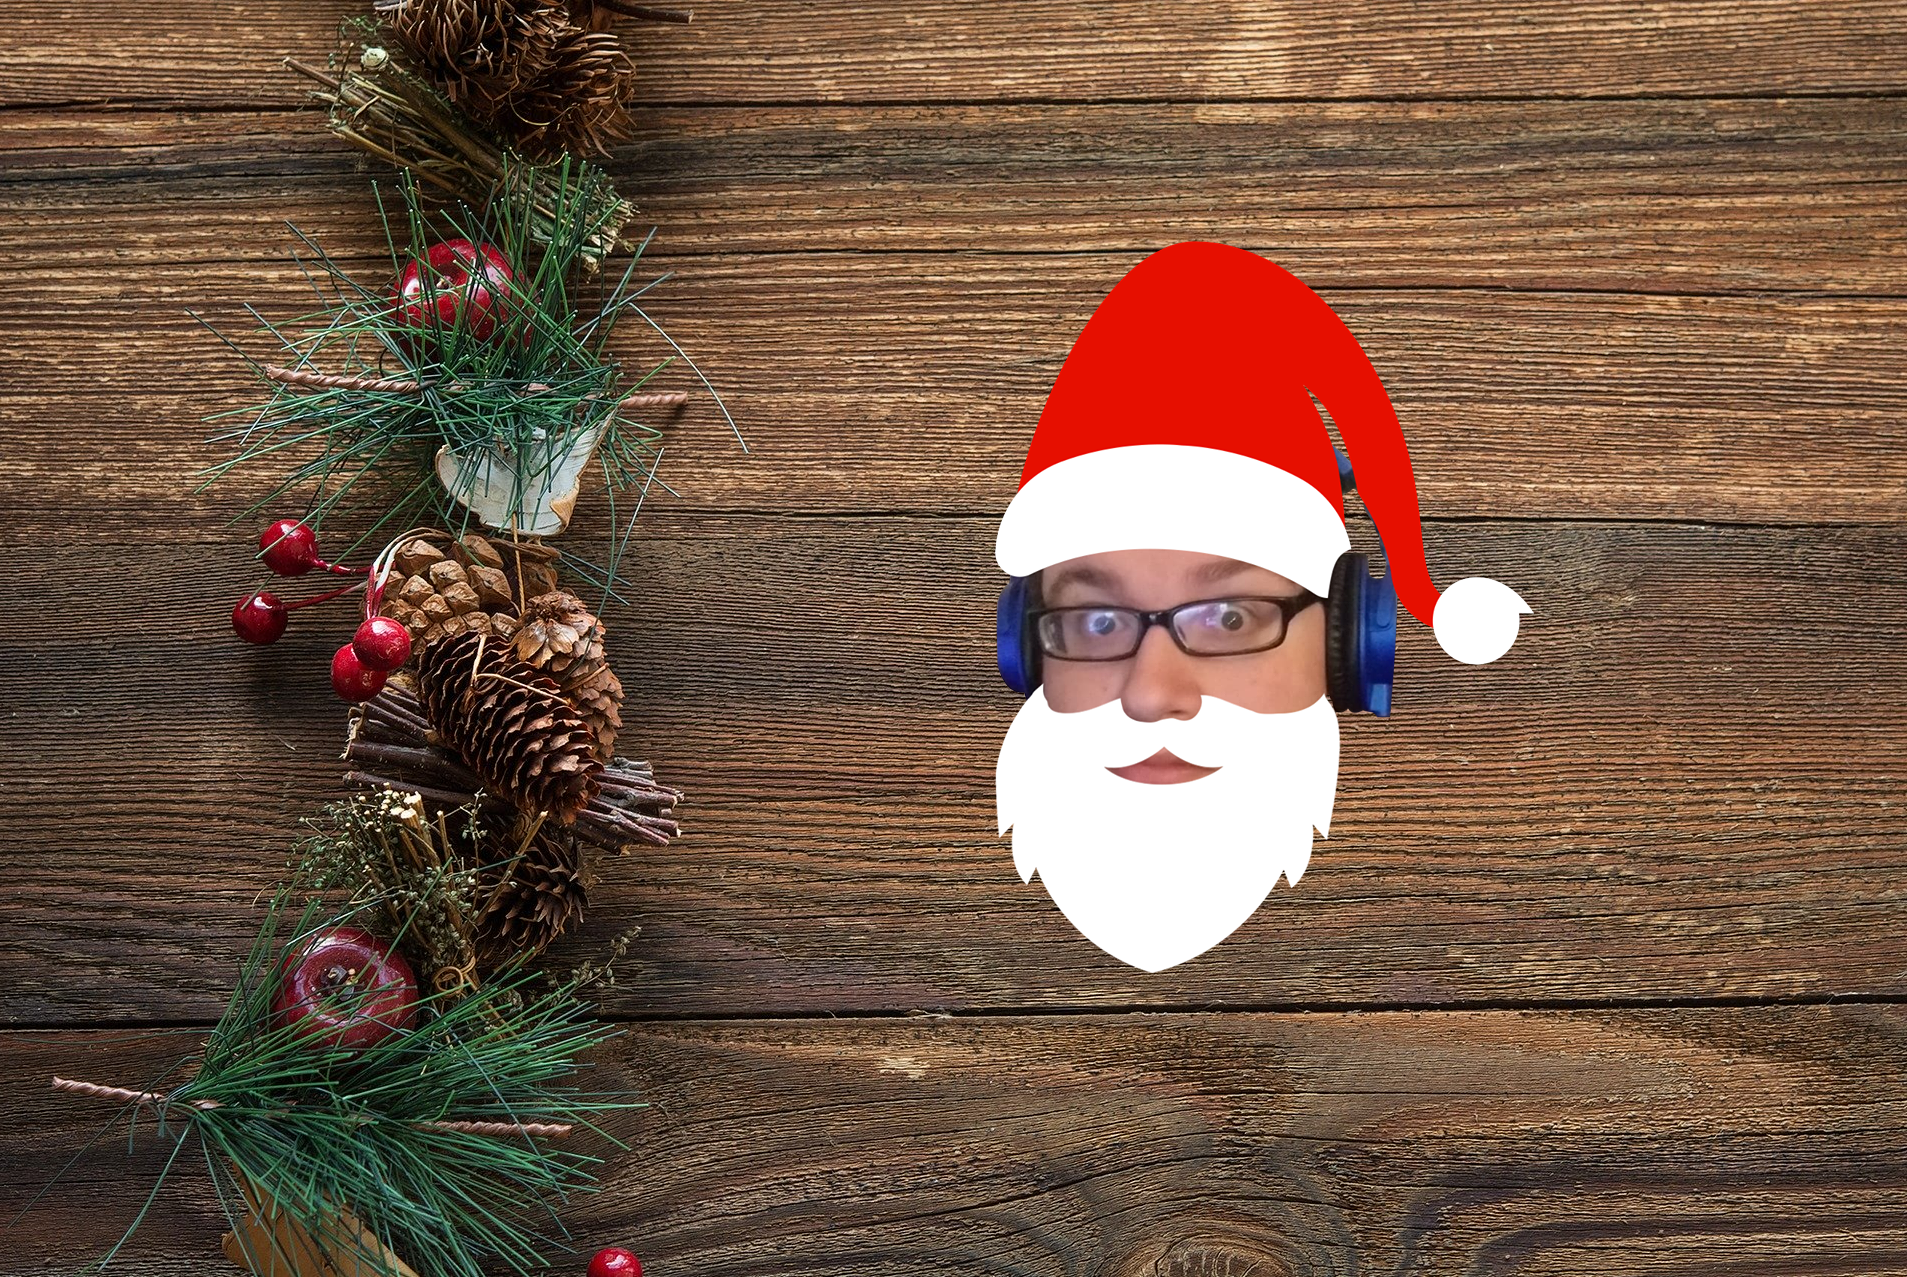 A Holly Jolly Noisemas: Inter Claus is Coming to Town